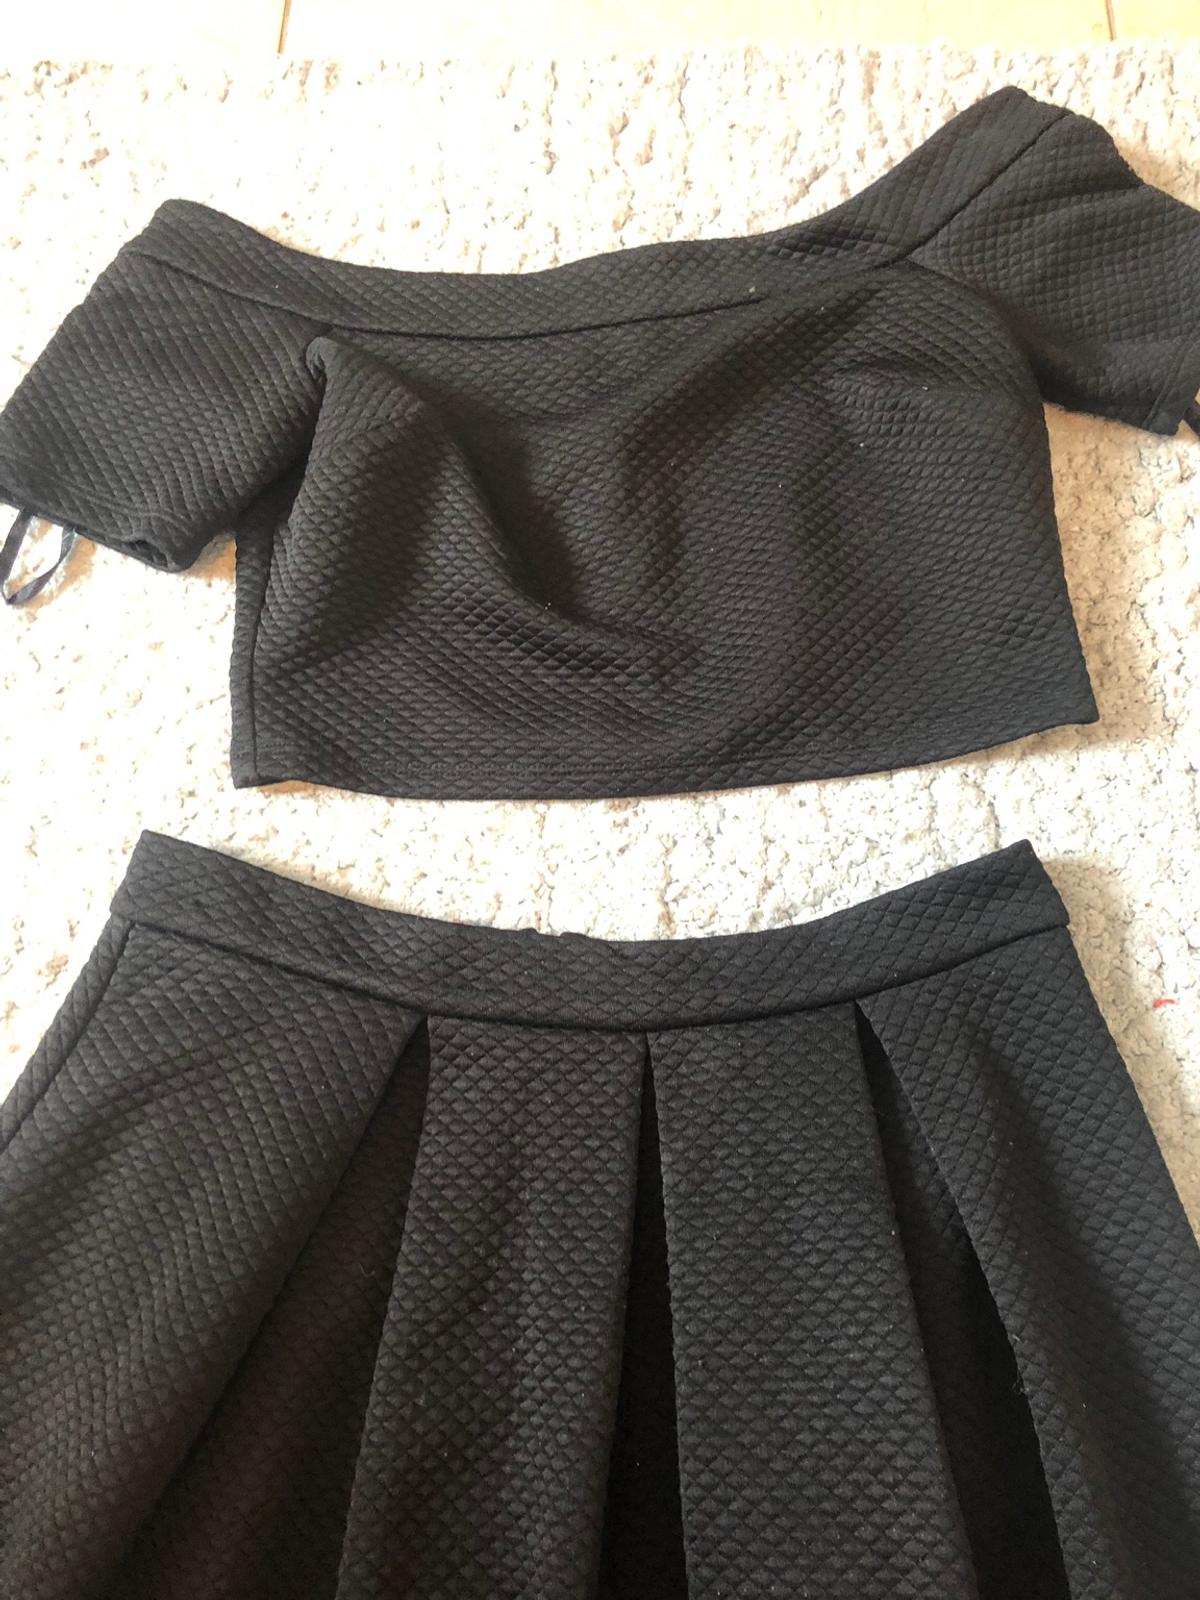 Beautiful river island 2 peice dress. Includes off the shoulder top and mid- skirt. They are both size 12. Like brand new